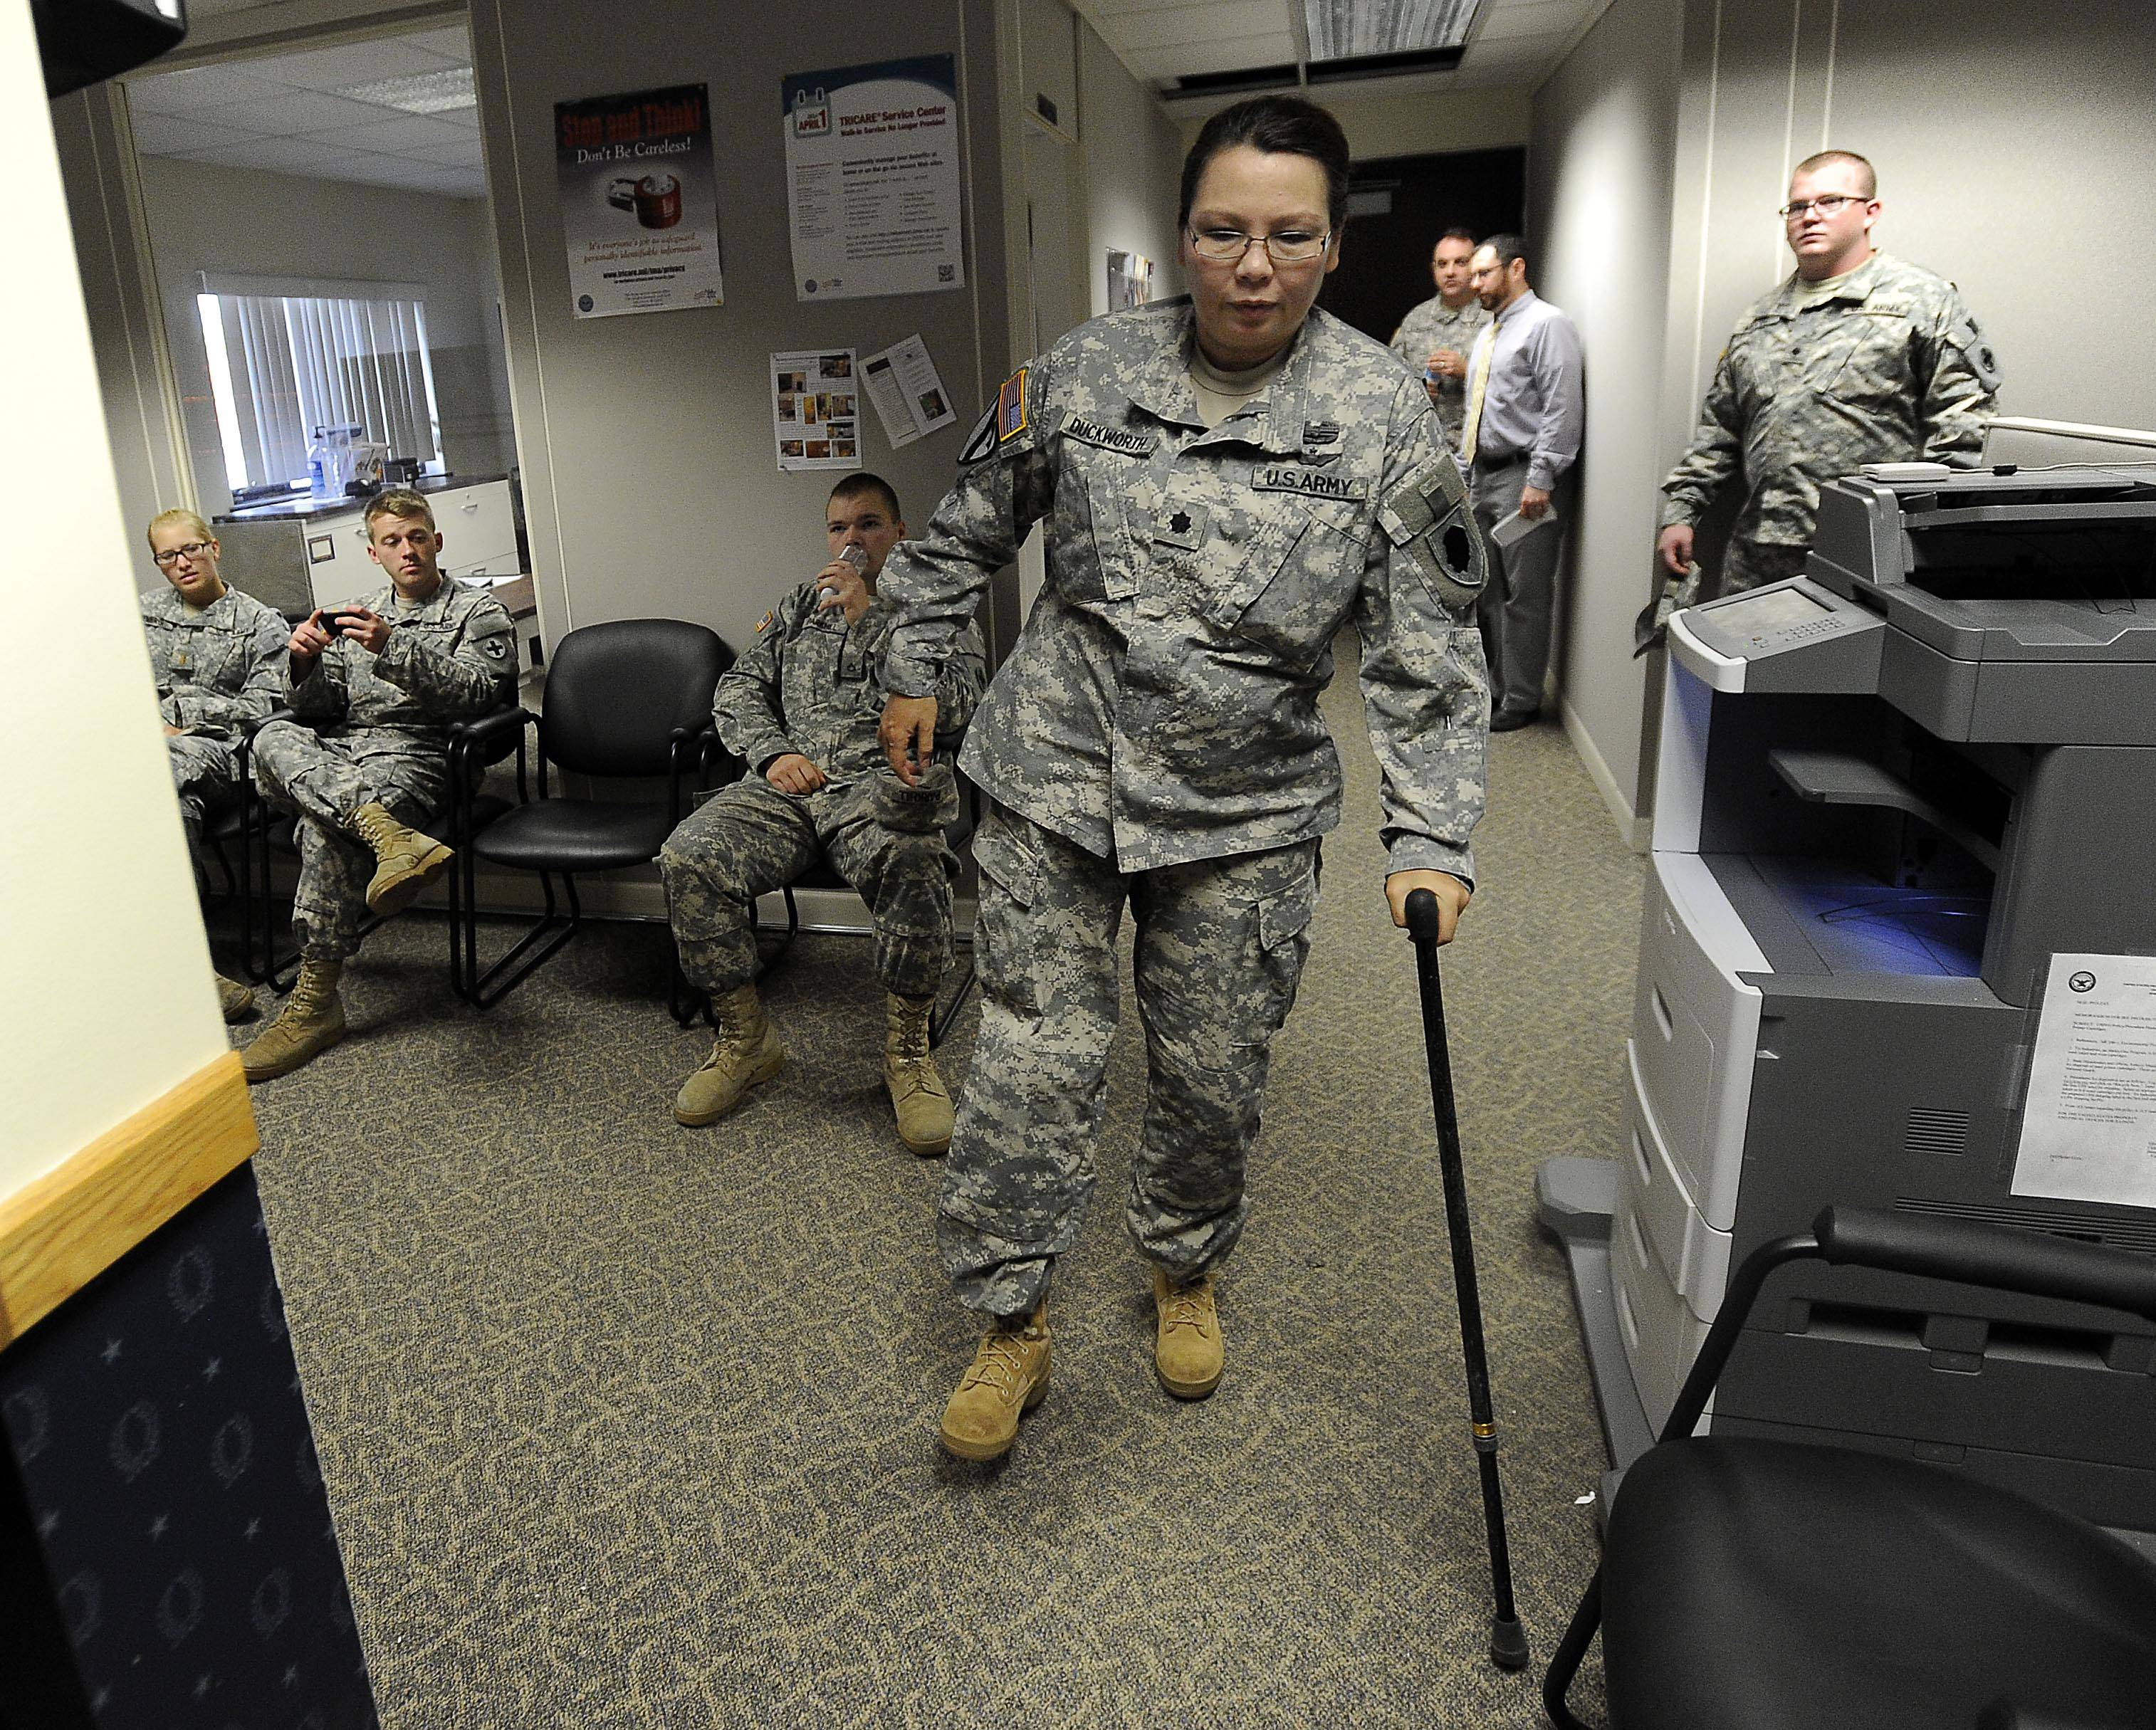 Images: Tammy Duckworth's Illinois National Guard Duty, October 2014